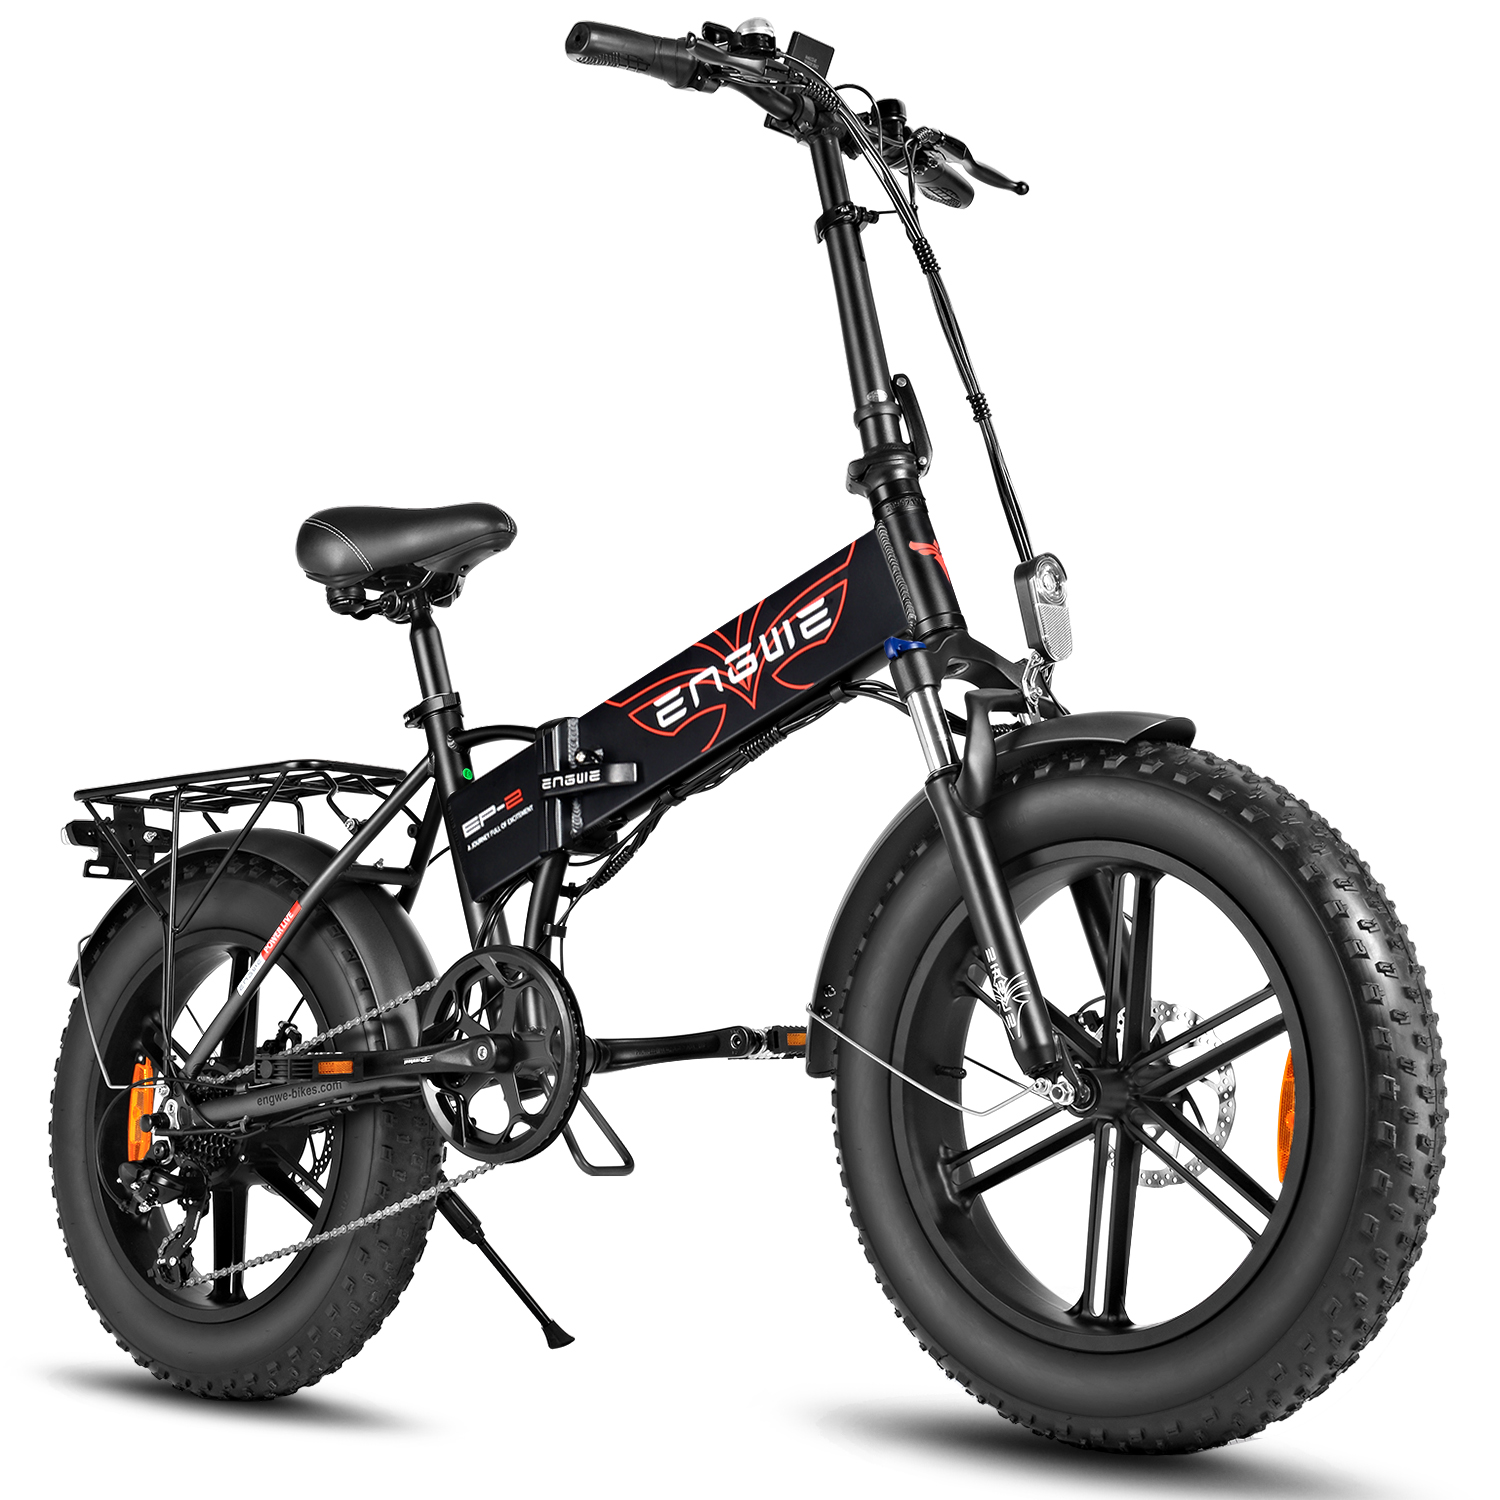 Pre Sale ENGWE EP-2 500W Folding Fat Tire Electric Bike with 48V 12.5Ah Lithium-ion Battery Ship from US Warehouse